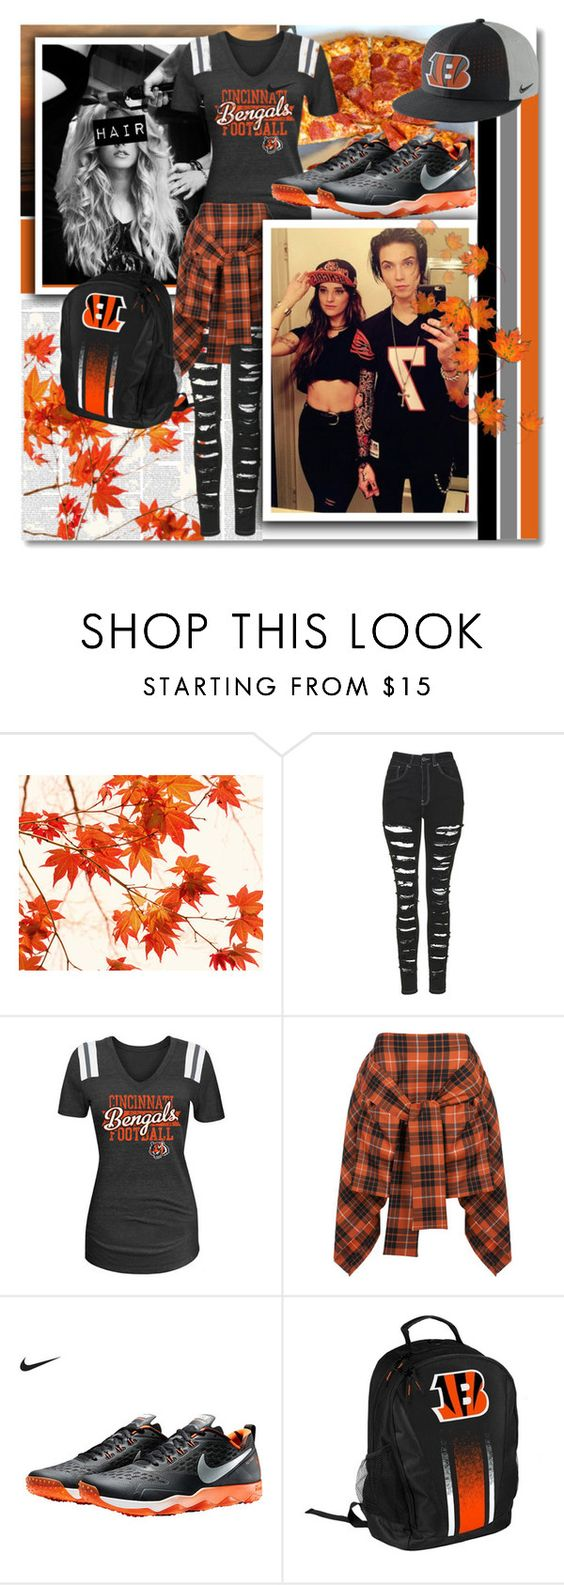 """""""Go to Bengals Match With Andy And Juliet!"""" by isabeldizova ❤ liked on Polyvore featuring WALL, The Ragged Priest, Vivienne Westwood Anglomania, Forever Collectibles and NIKE"""